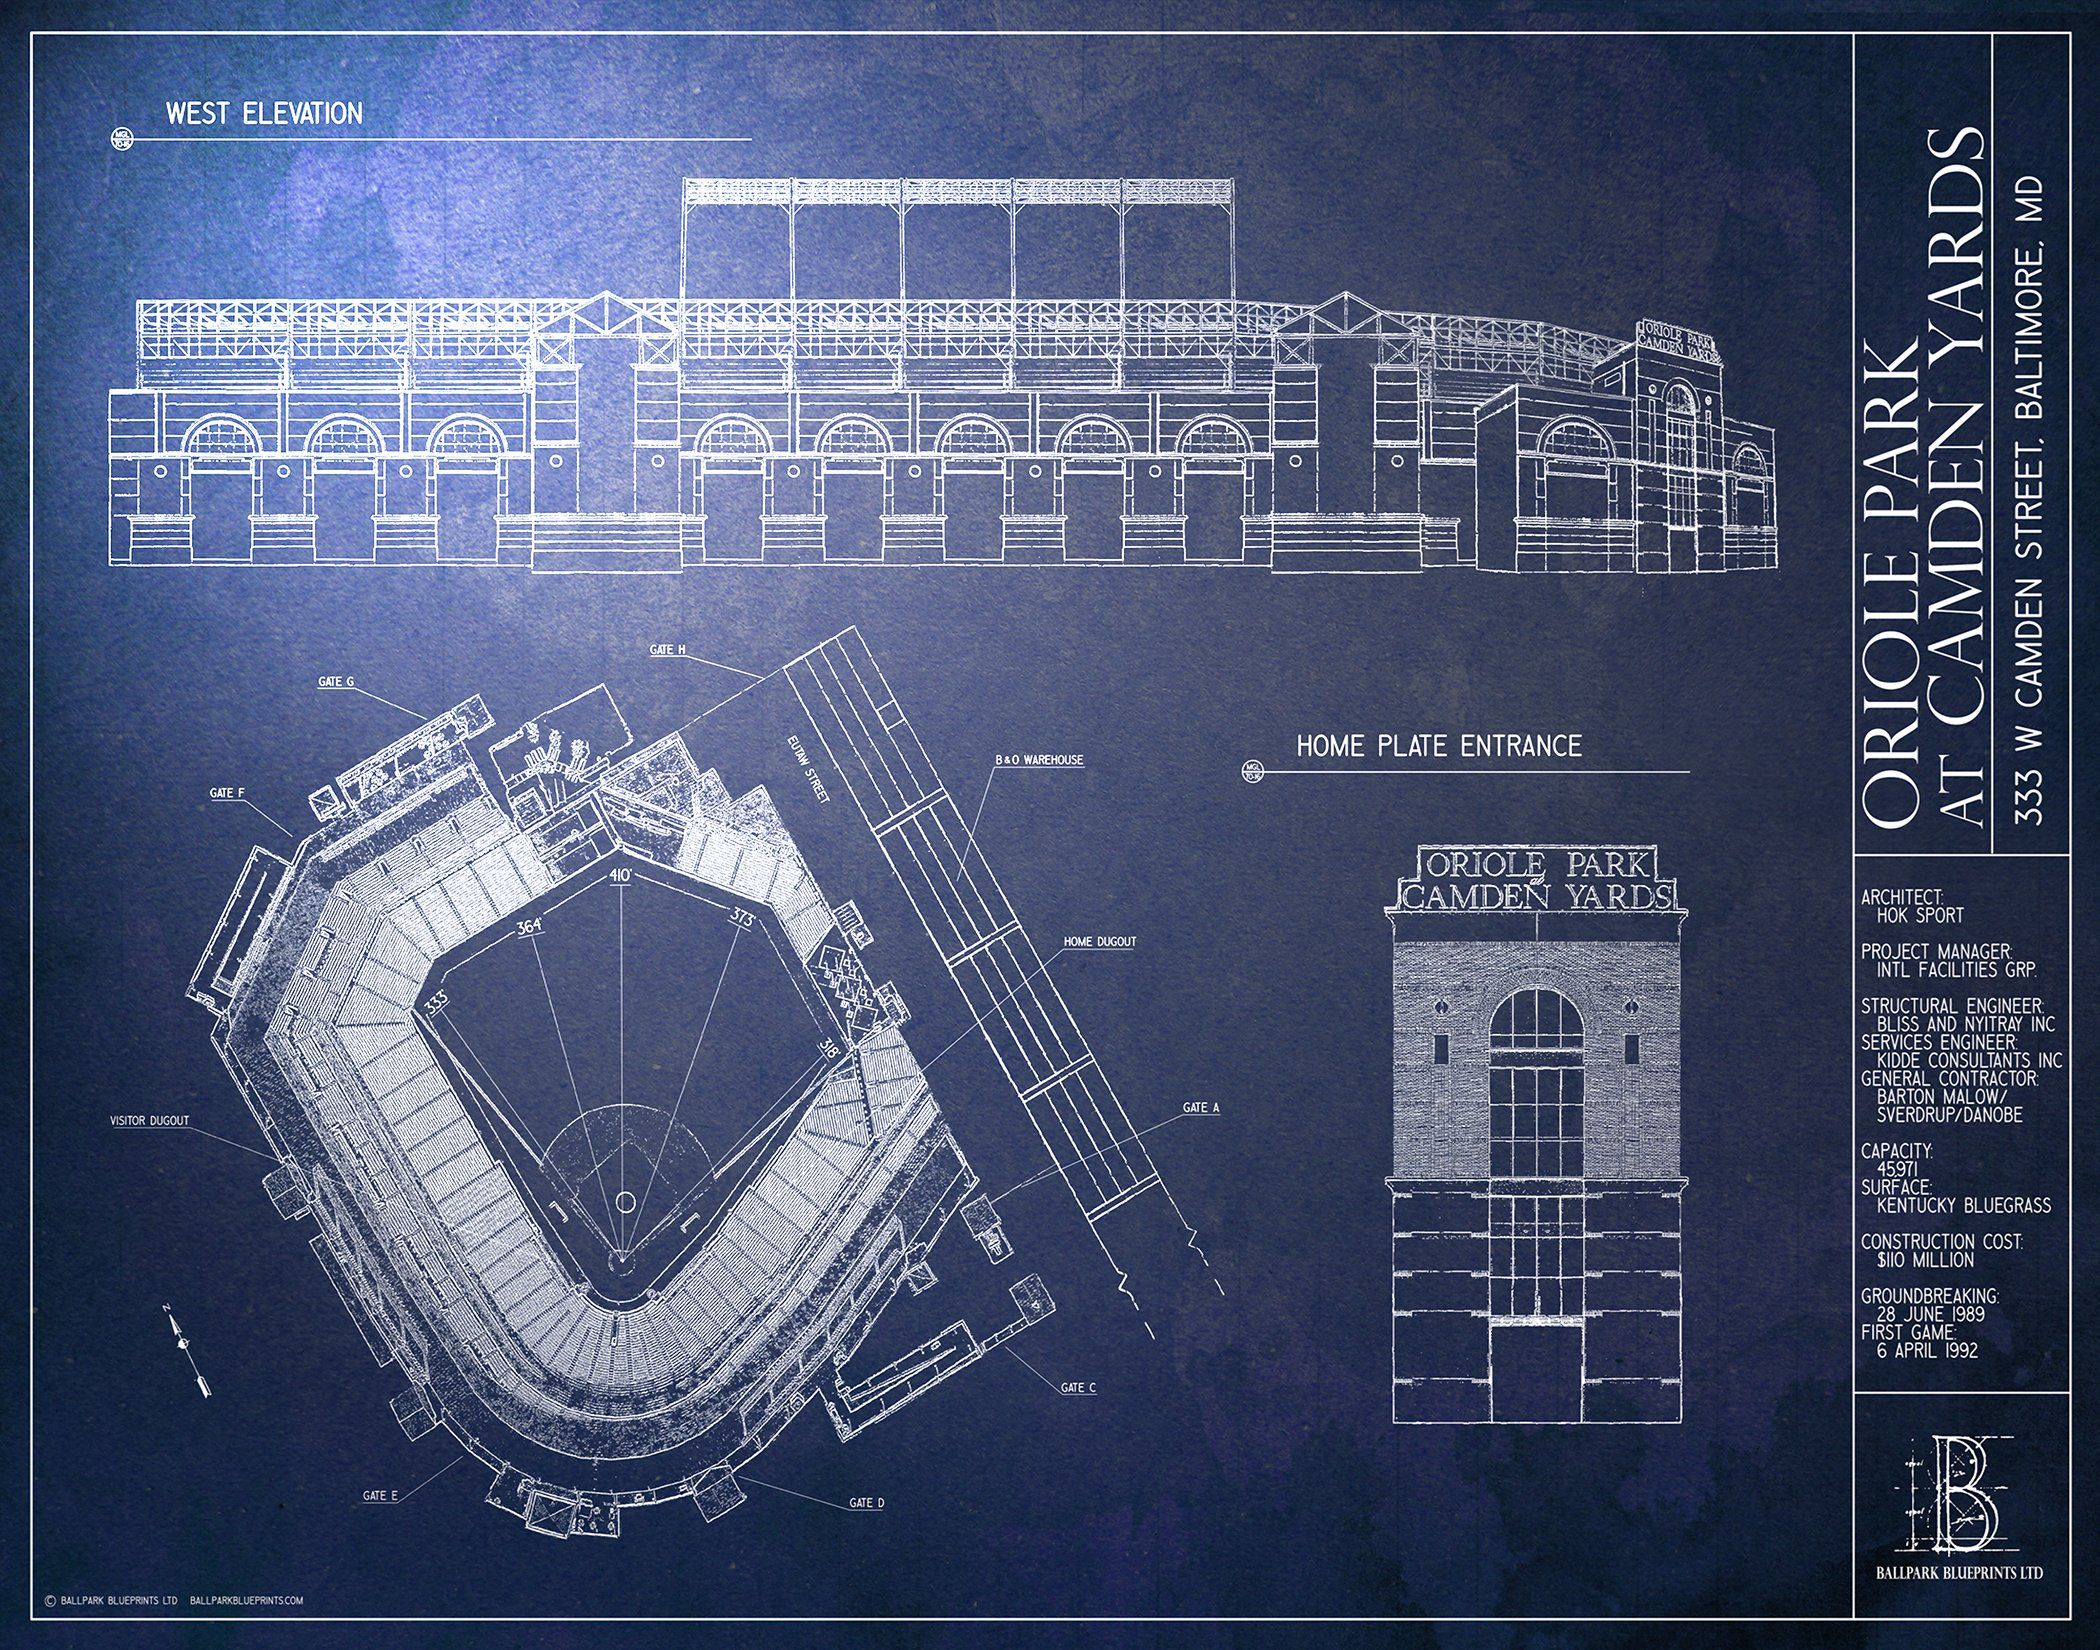 Camden yards blueprint design your wall wallpaper project new camden yards blueprint design your wall wallpaper malvernweather Choice Image